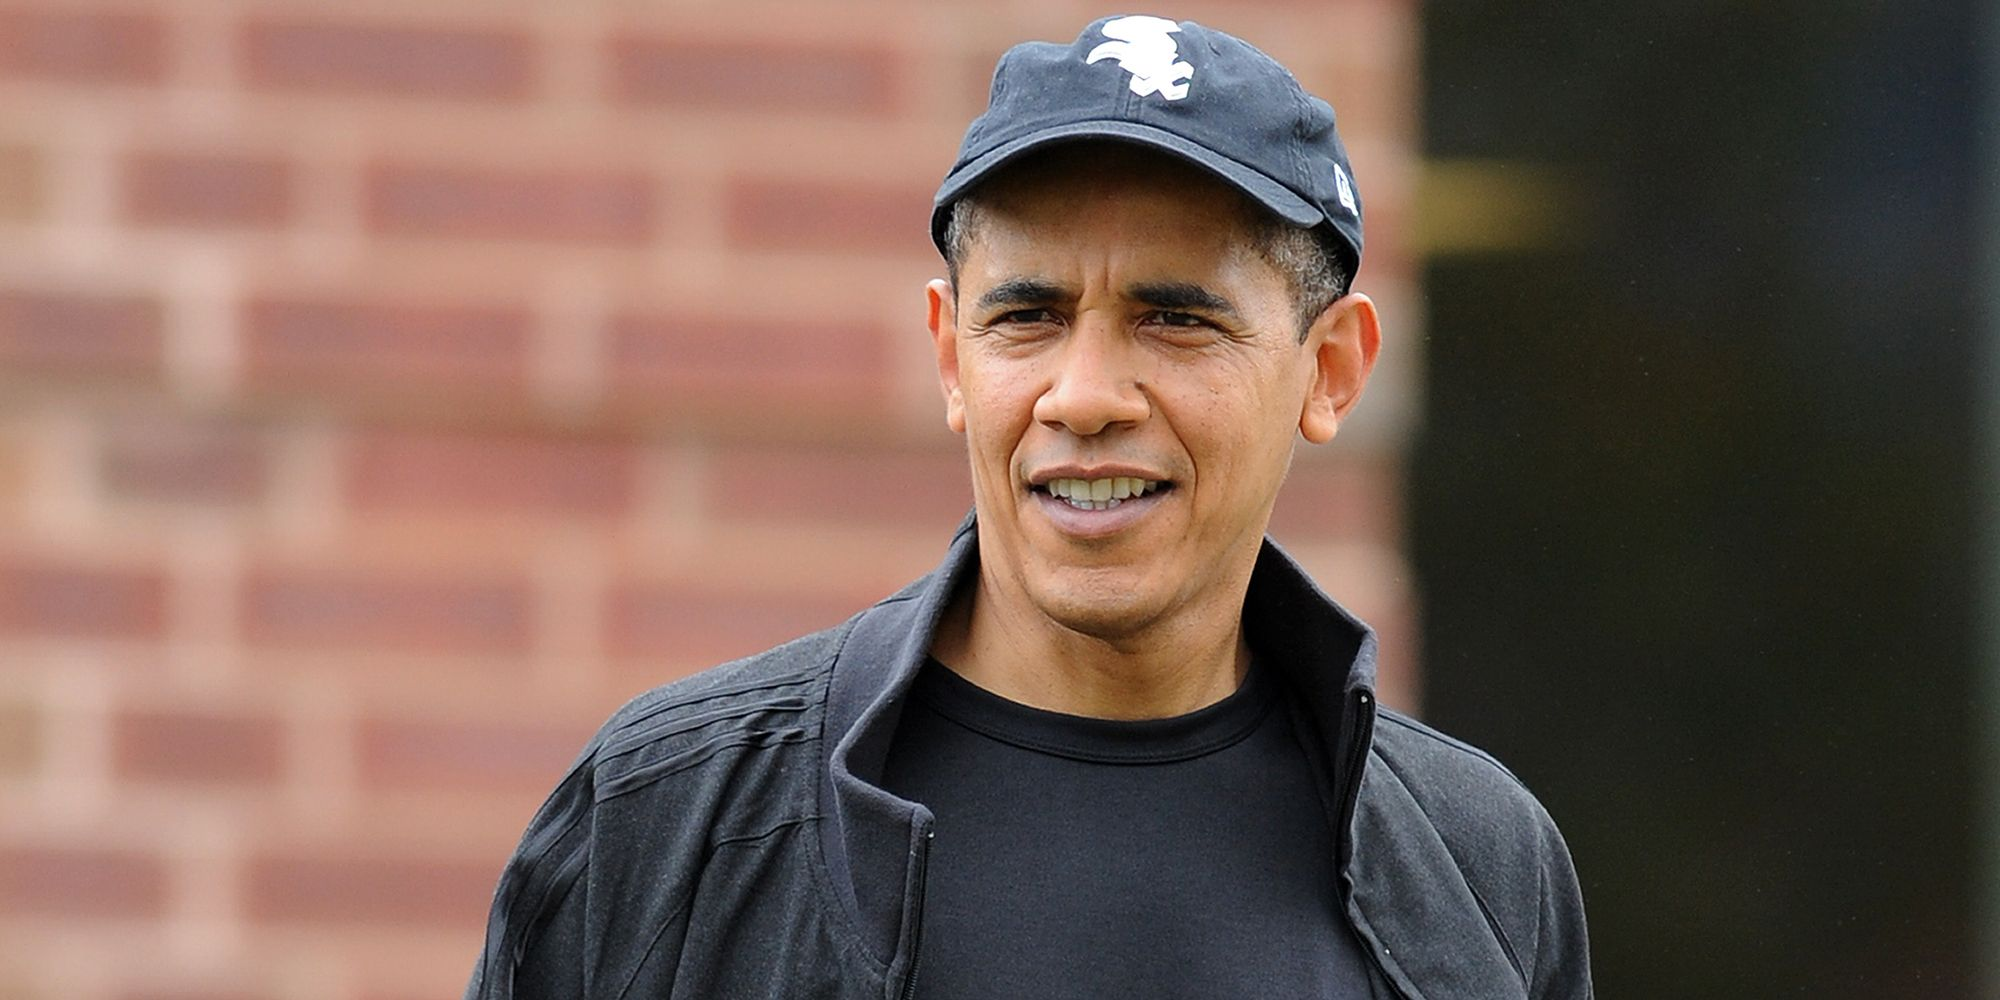 Barack Obama Is Chilling Out And Wearing His Hat Backwards On Vacation